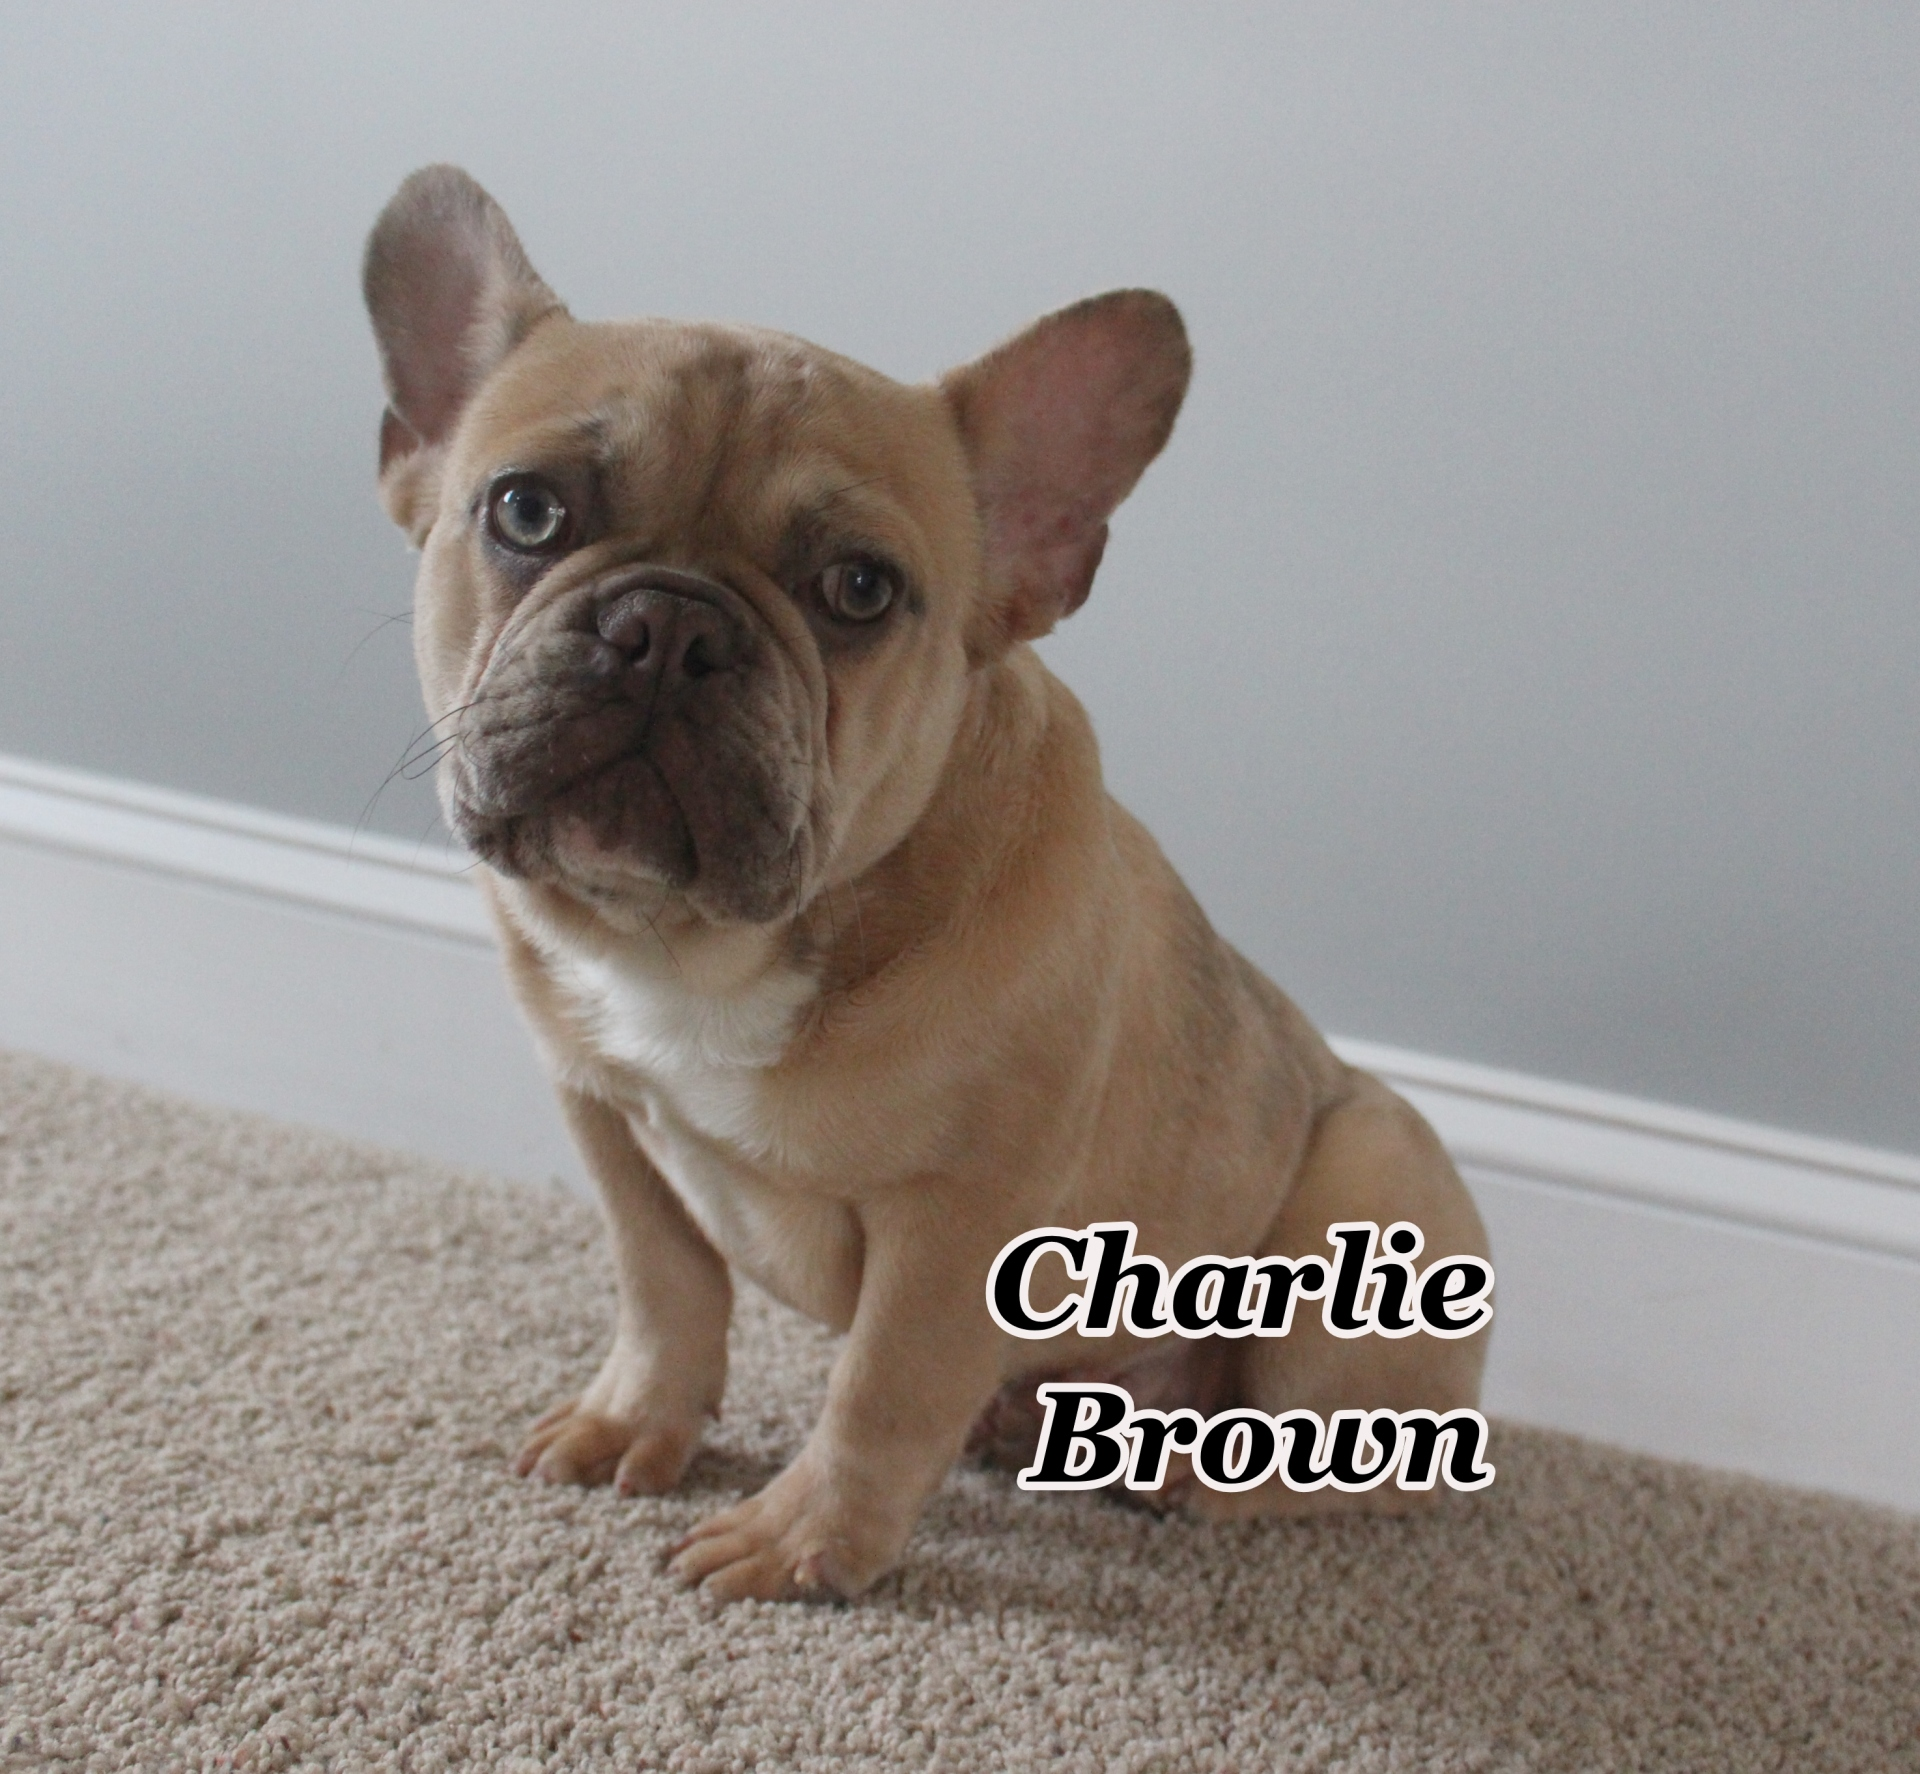 #FrenchBulldogPuppies #MerleFrenchBulldog #Frenchie #AvailablePuppies #AKCRegFrenchBulldog #SouthernTerritoryFrenchies #CharlieBrown